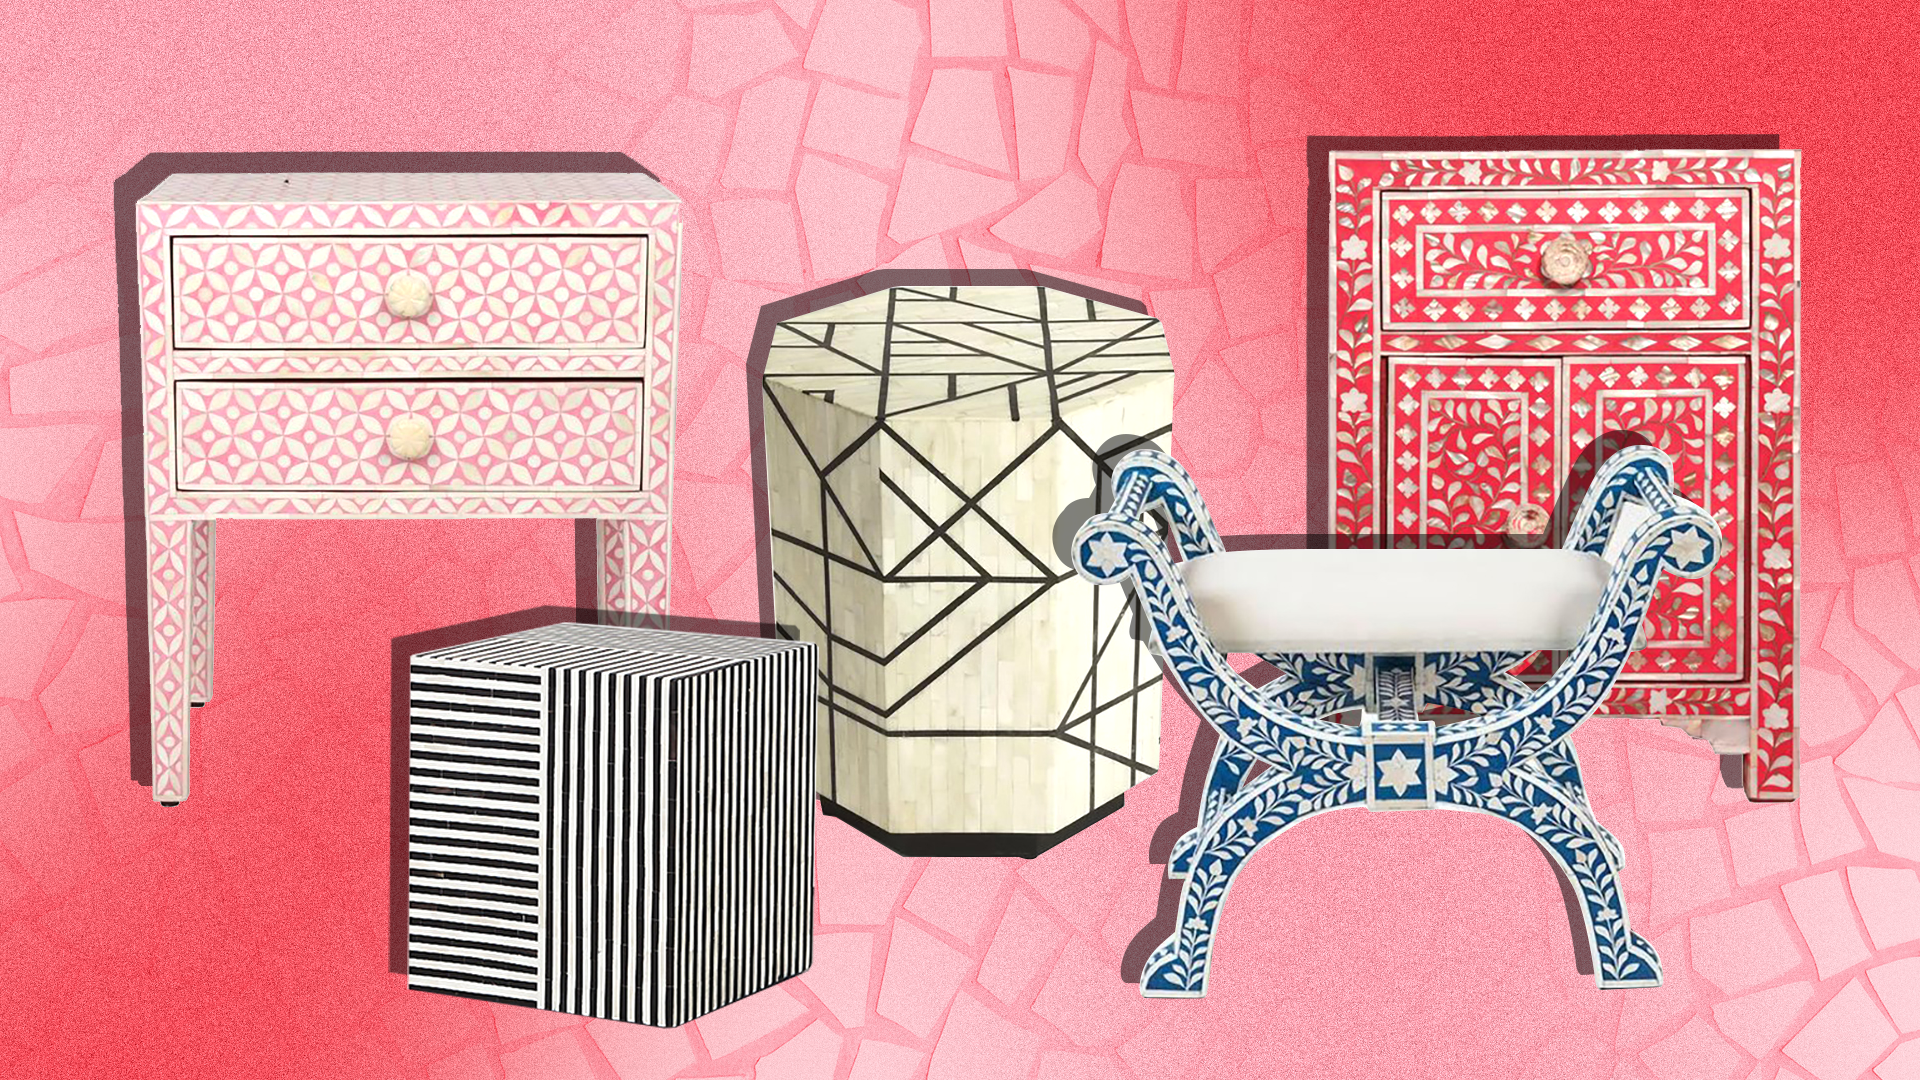 24 Pieces of Bone Inlay Furniture That Will Instantly Elevate Any Apartment